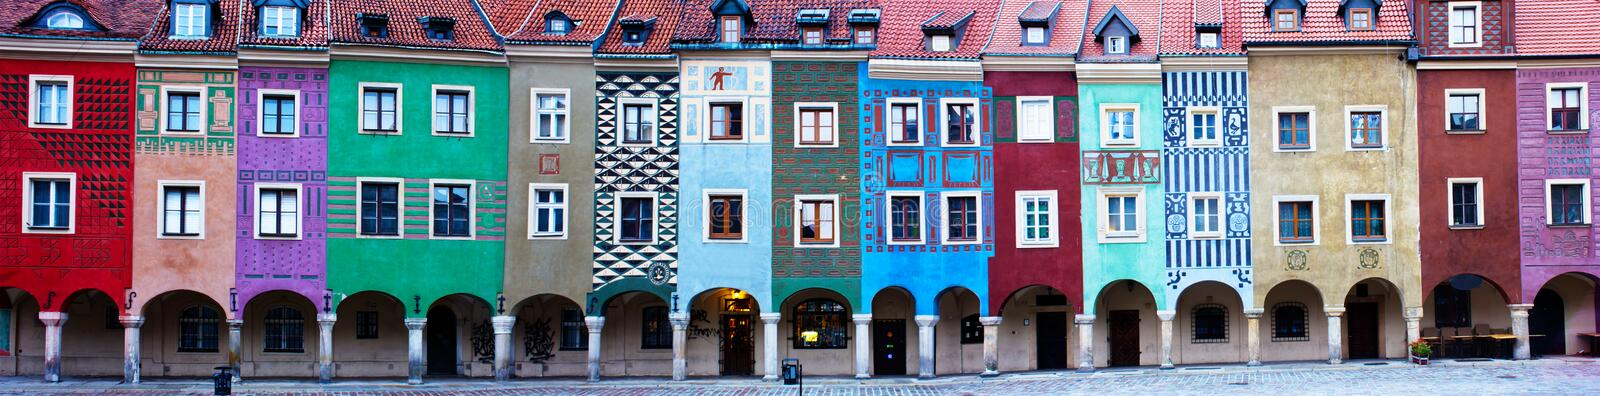 Houses of old Poznan, Poland royalty free stock photo